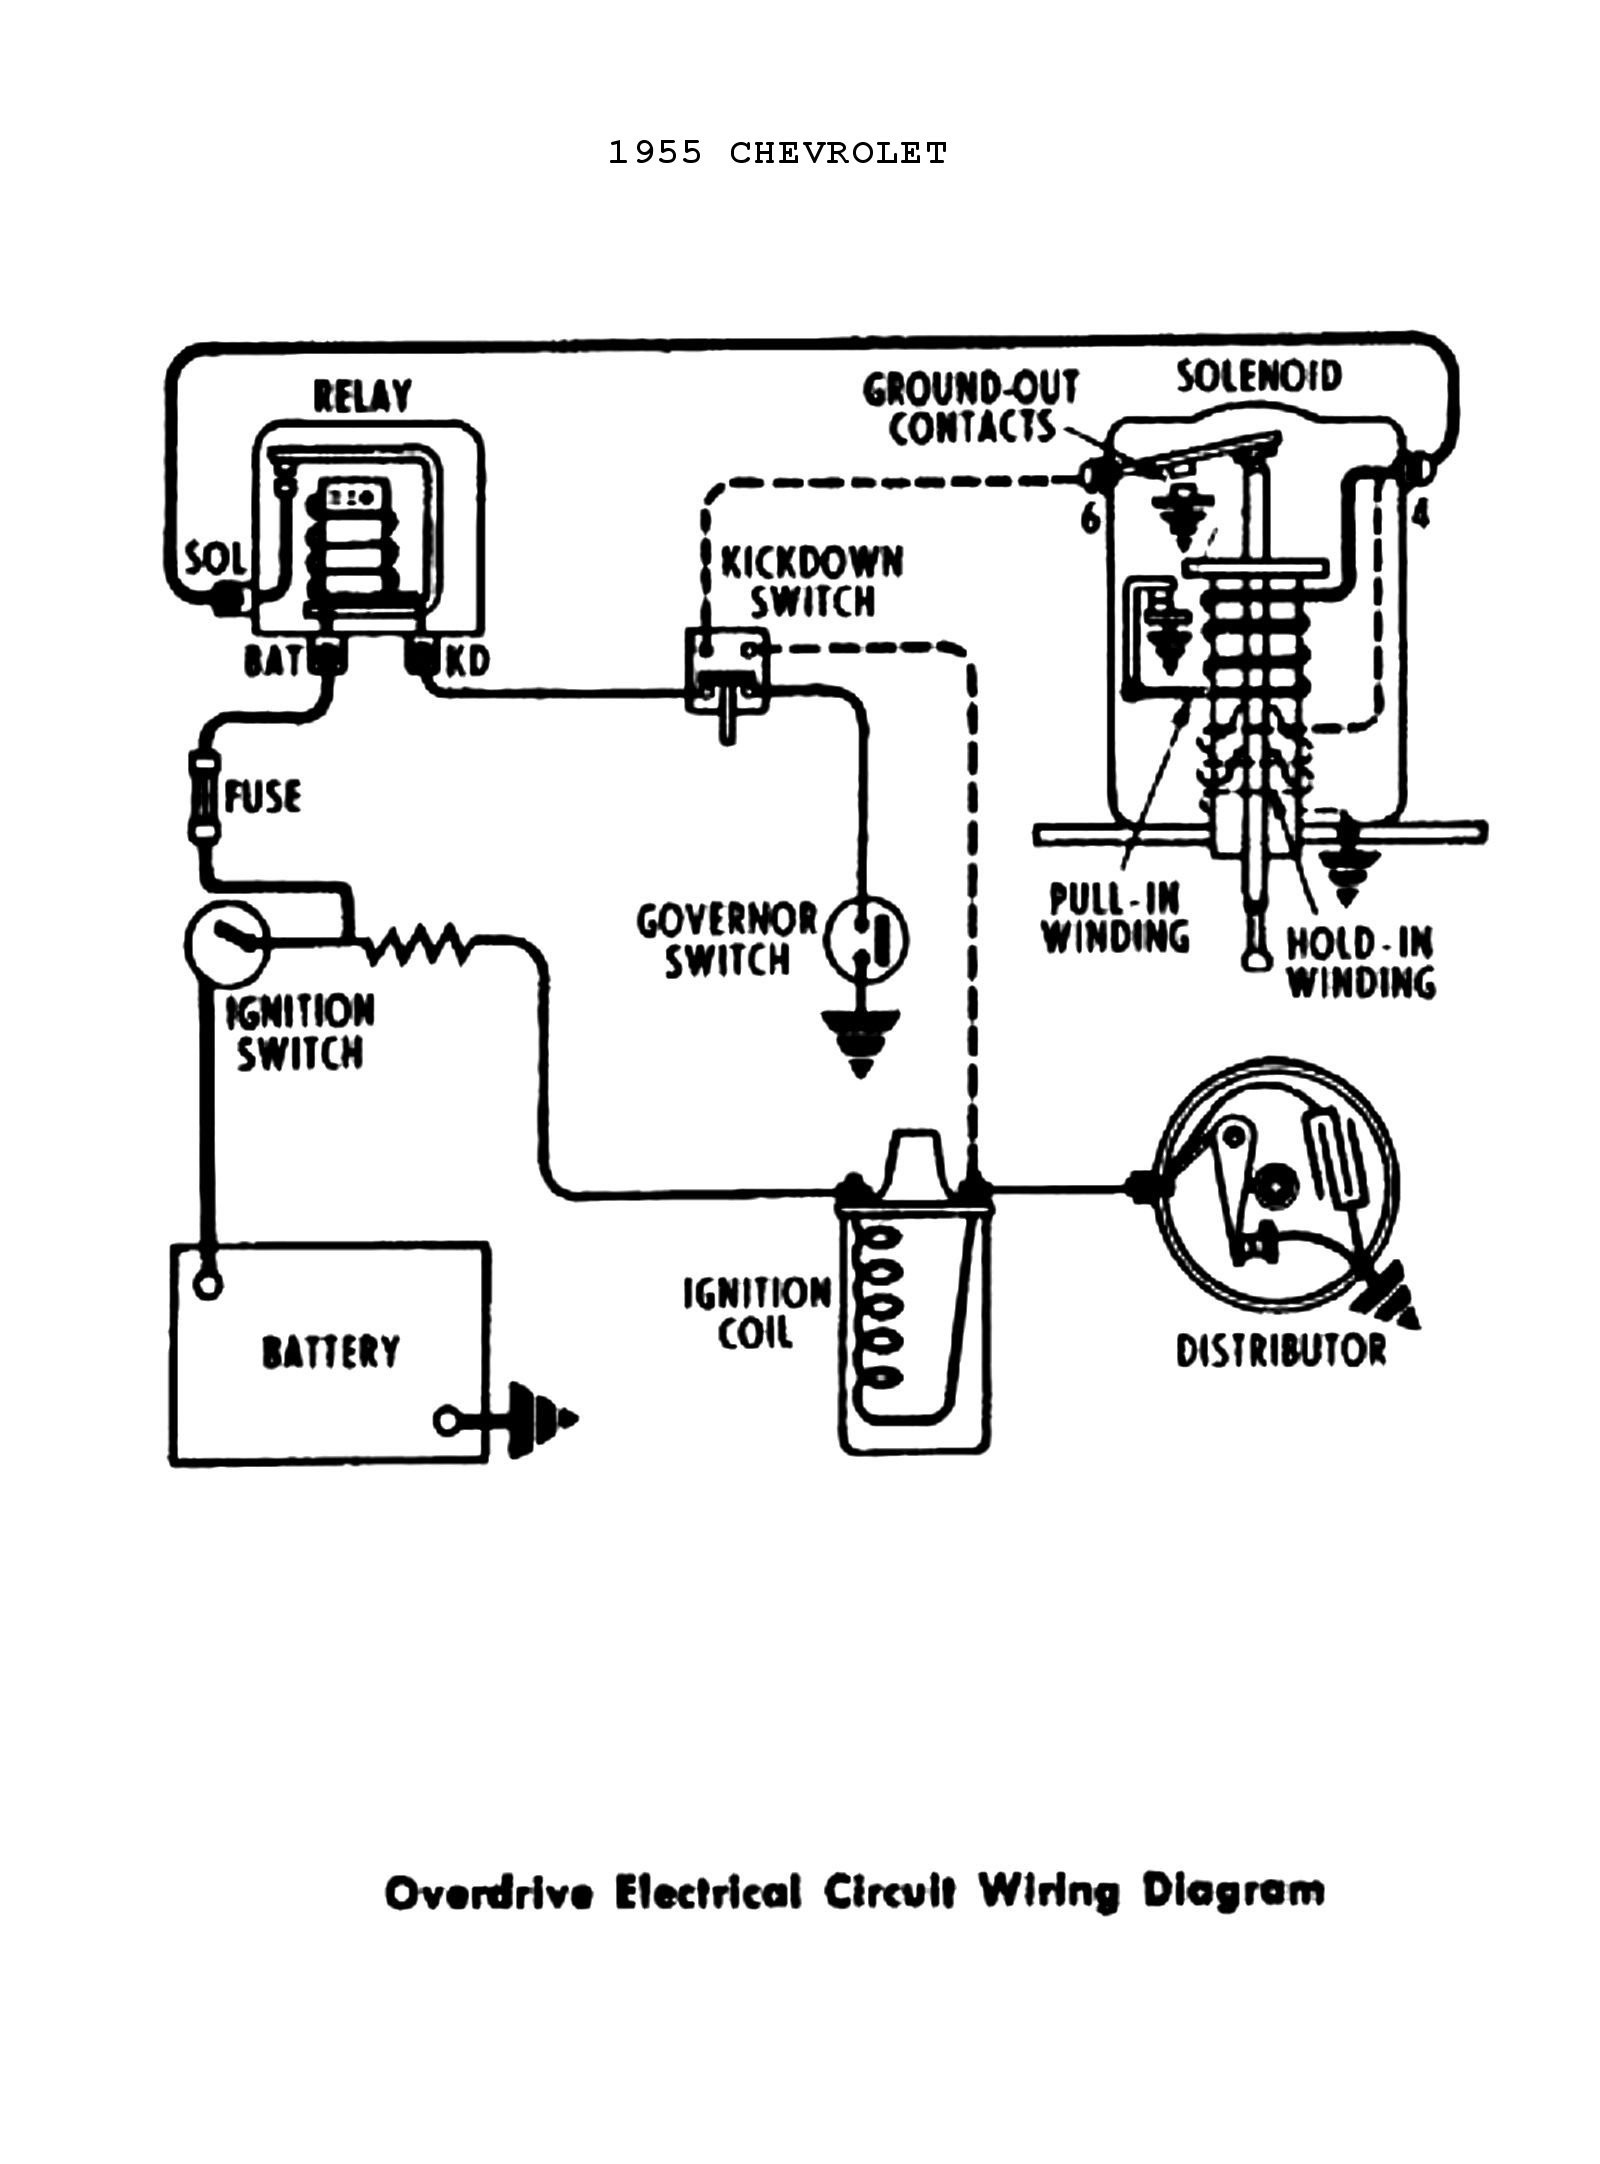 1951 Chevy Truck Wiring Diagram Wiring Diagrams